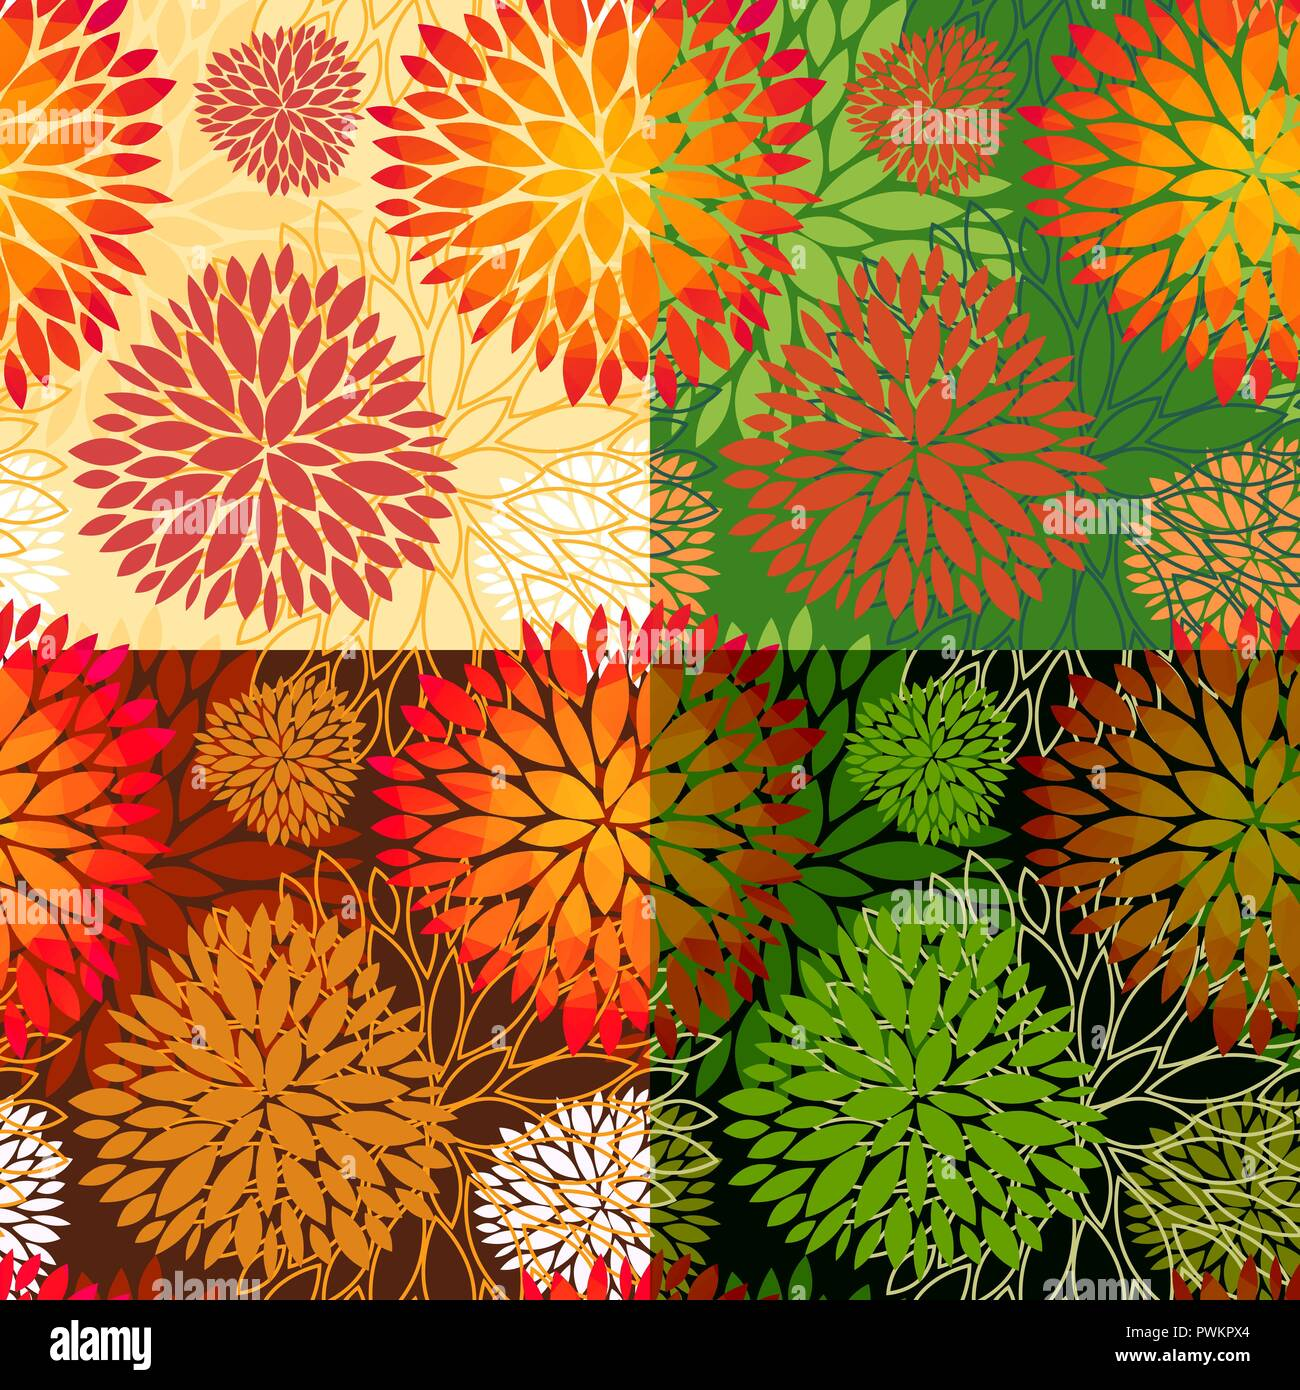 Set Of 4 Vector Seamless Abstract Floral Backgrounds In Autumn